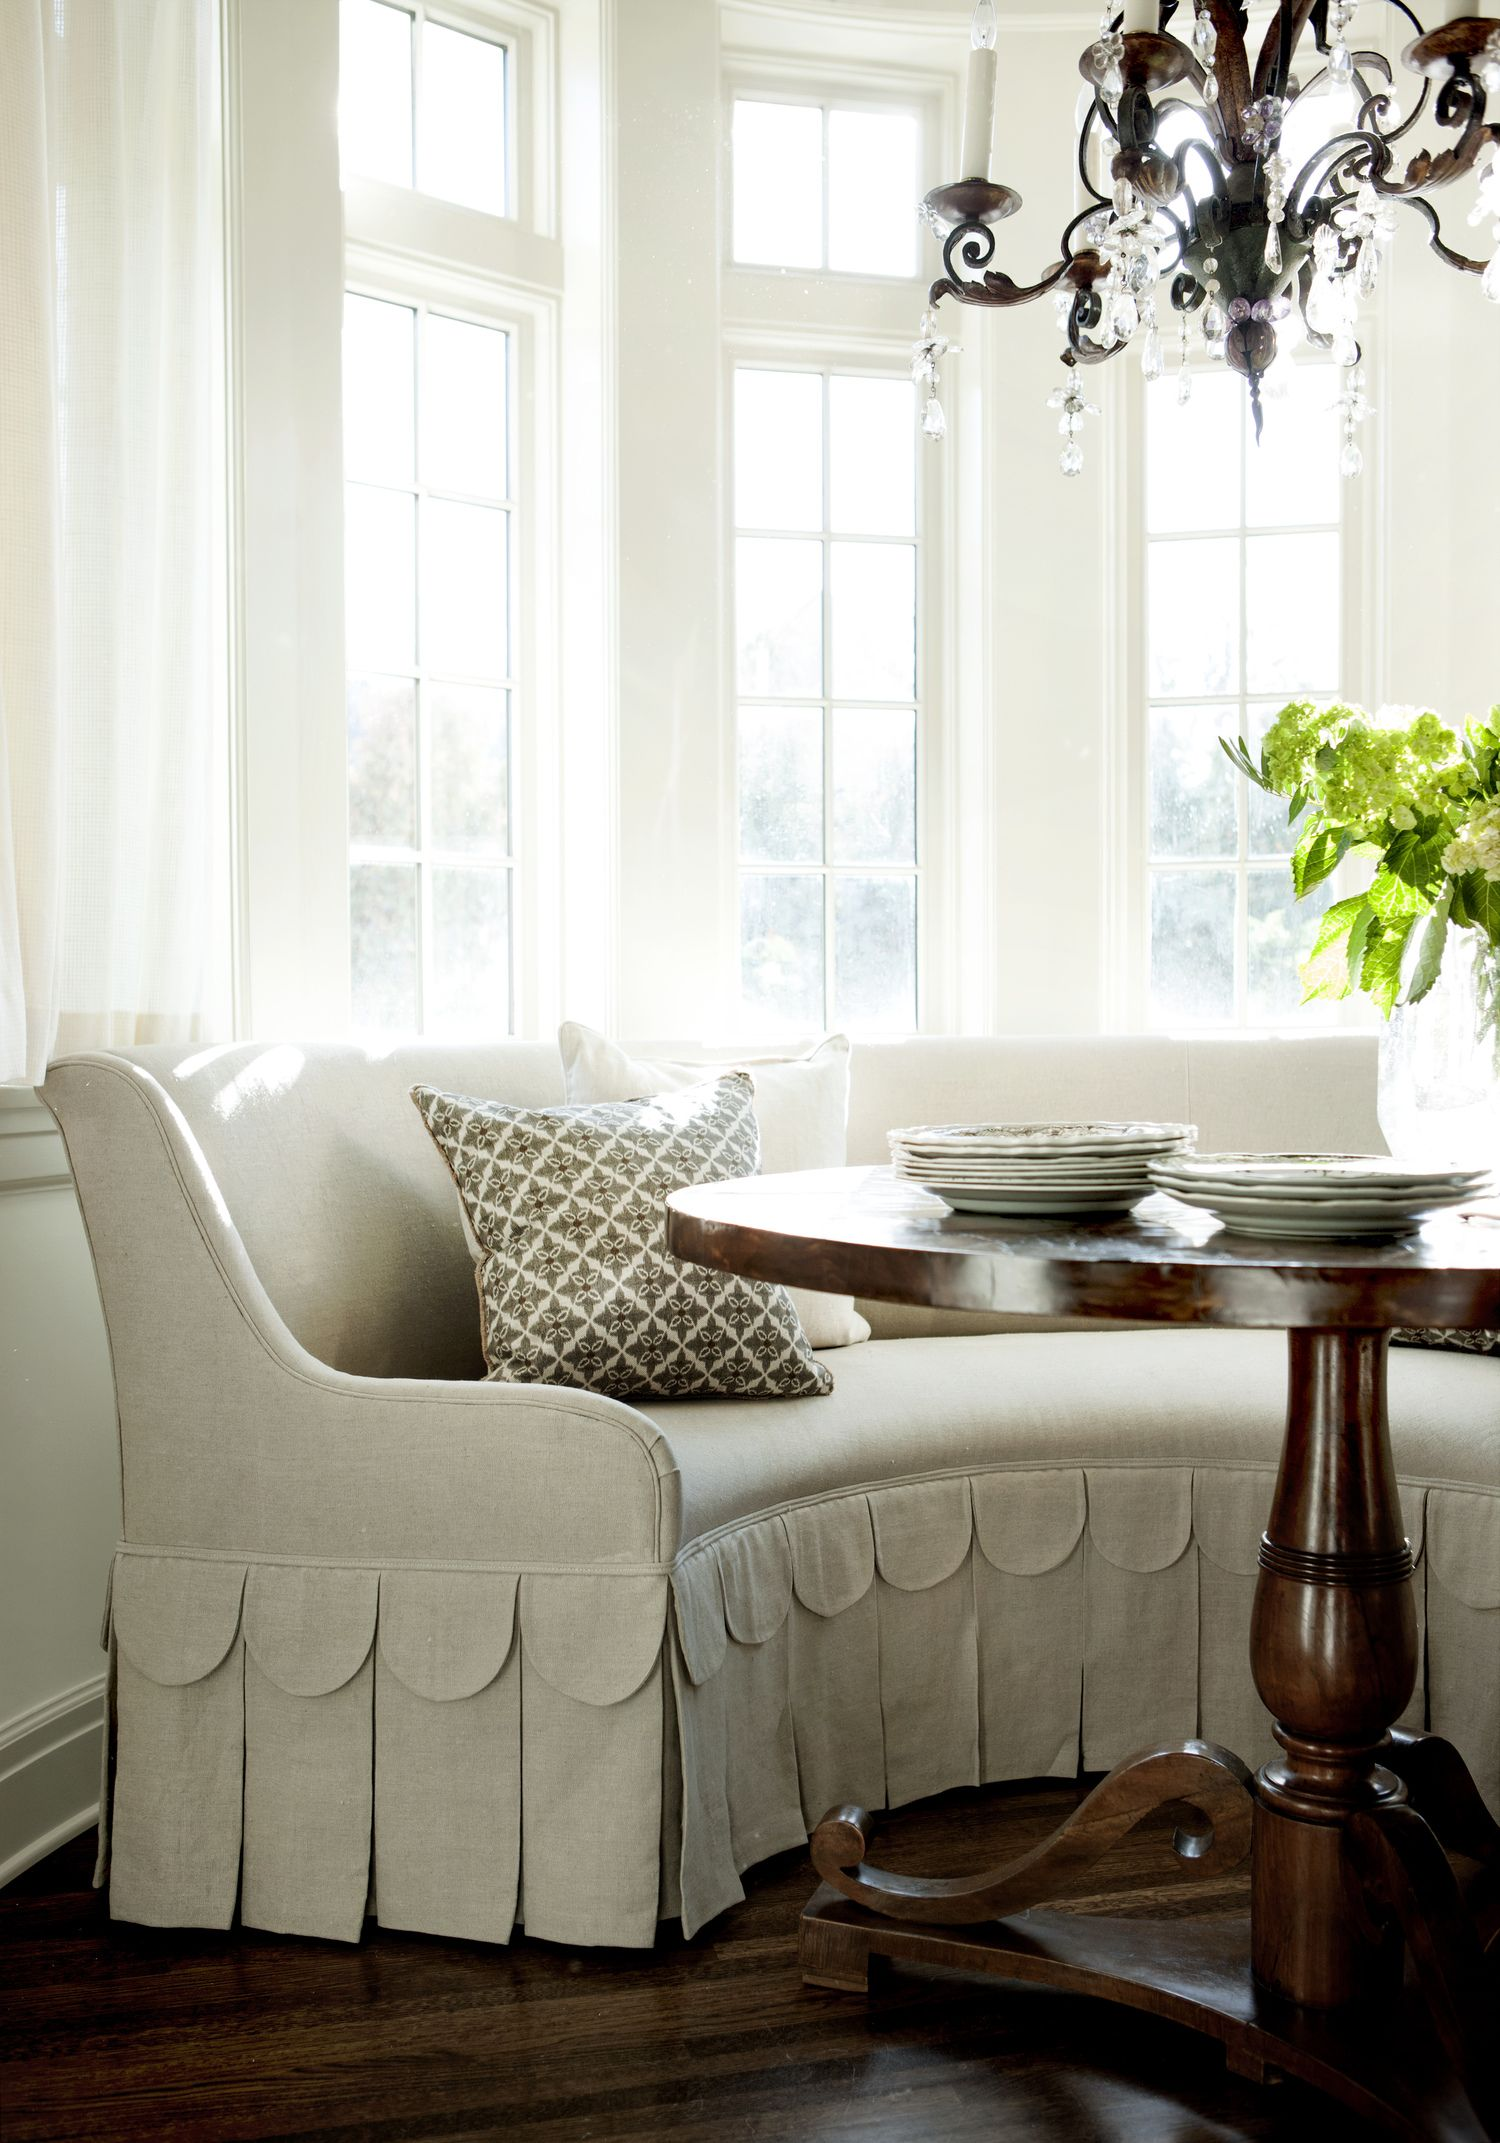 kitchen settee lighting home depot banquette ideas dining curved bench with scallop details kitchens workbook feature